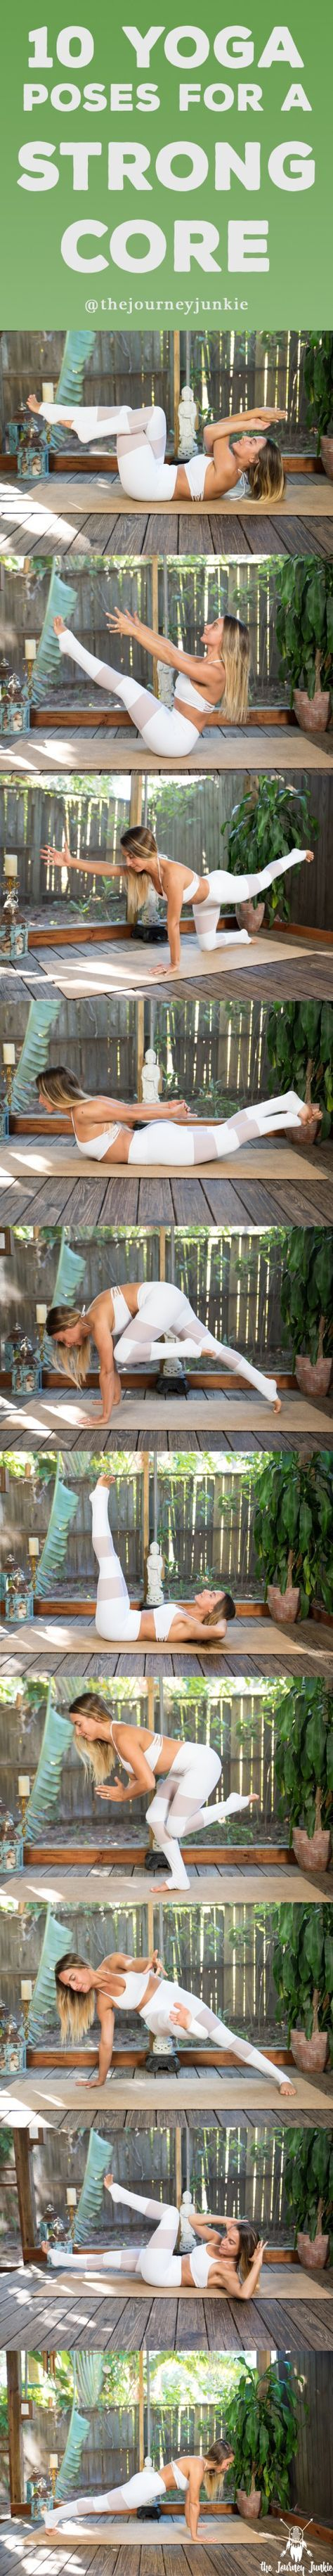 10 Poses for a Strong & Powerful Core - Pin now, work on your core strength now.